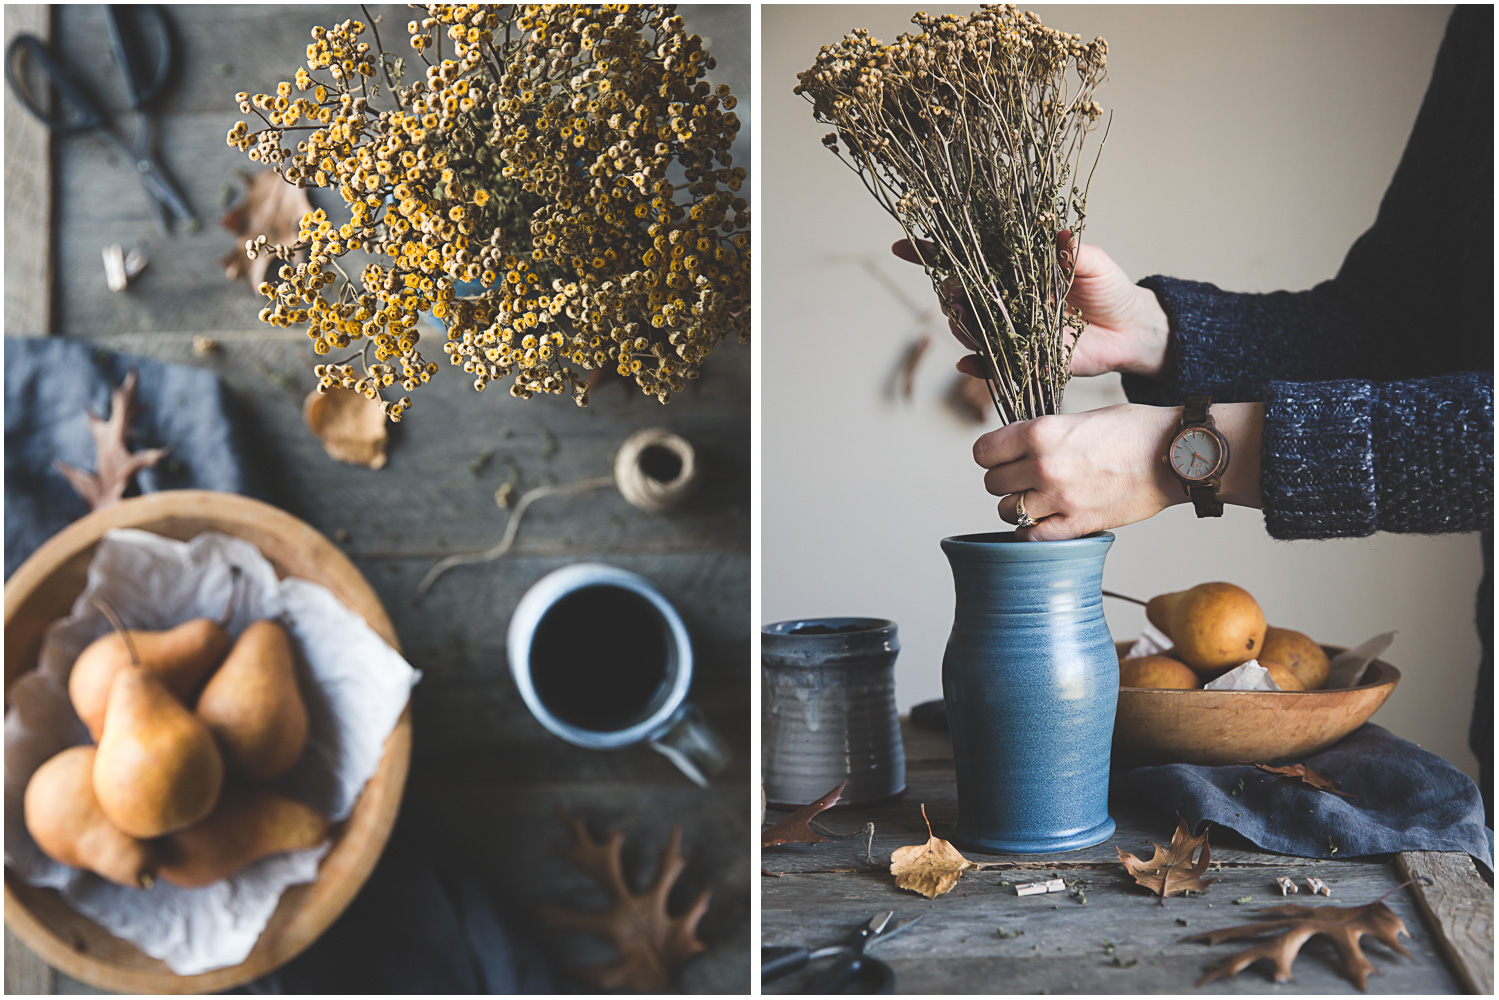 Arranging dried tansy and golden pears